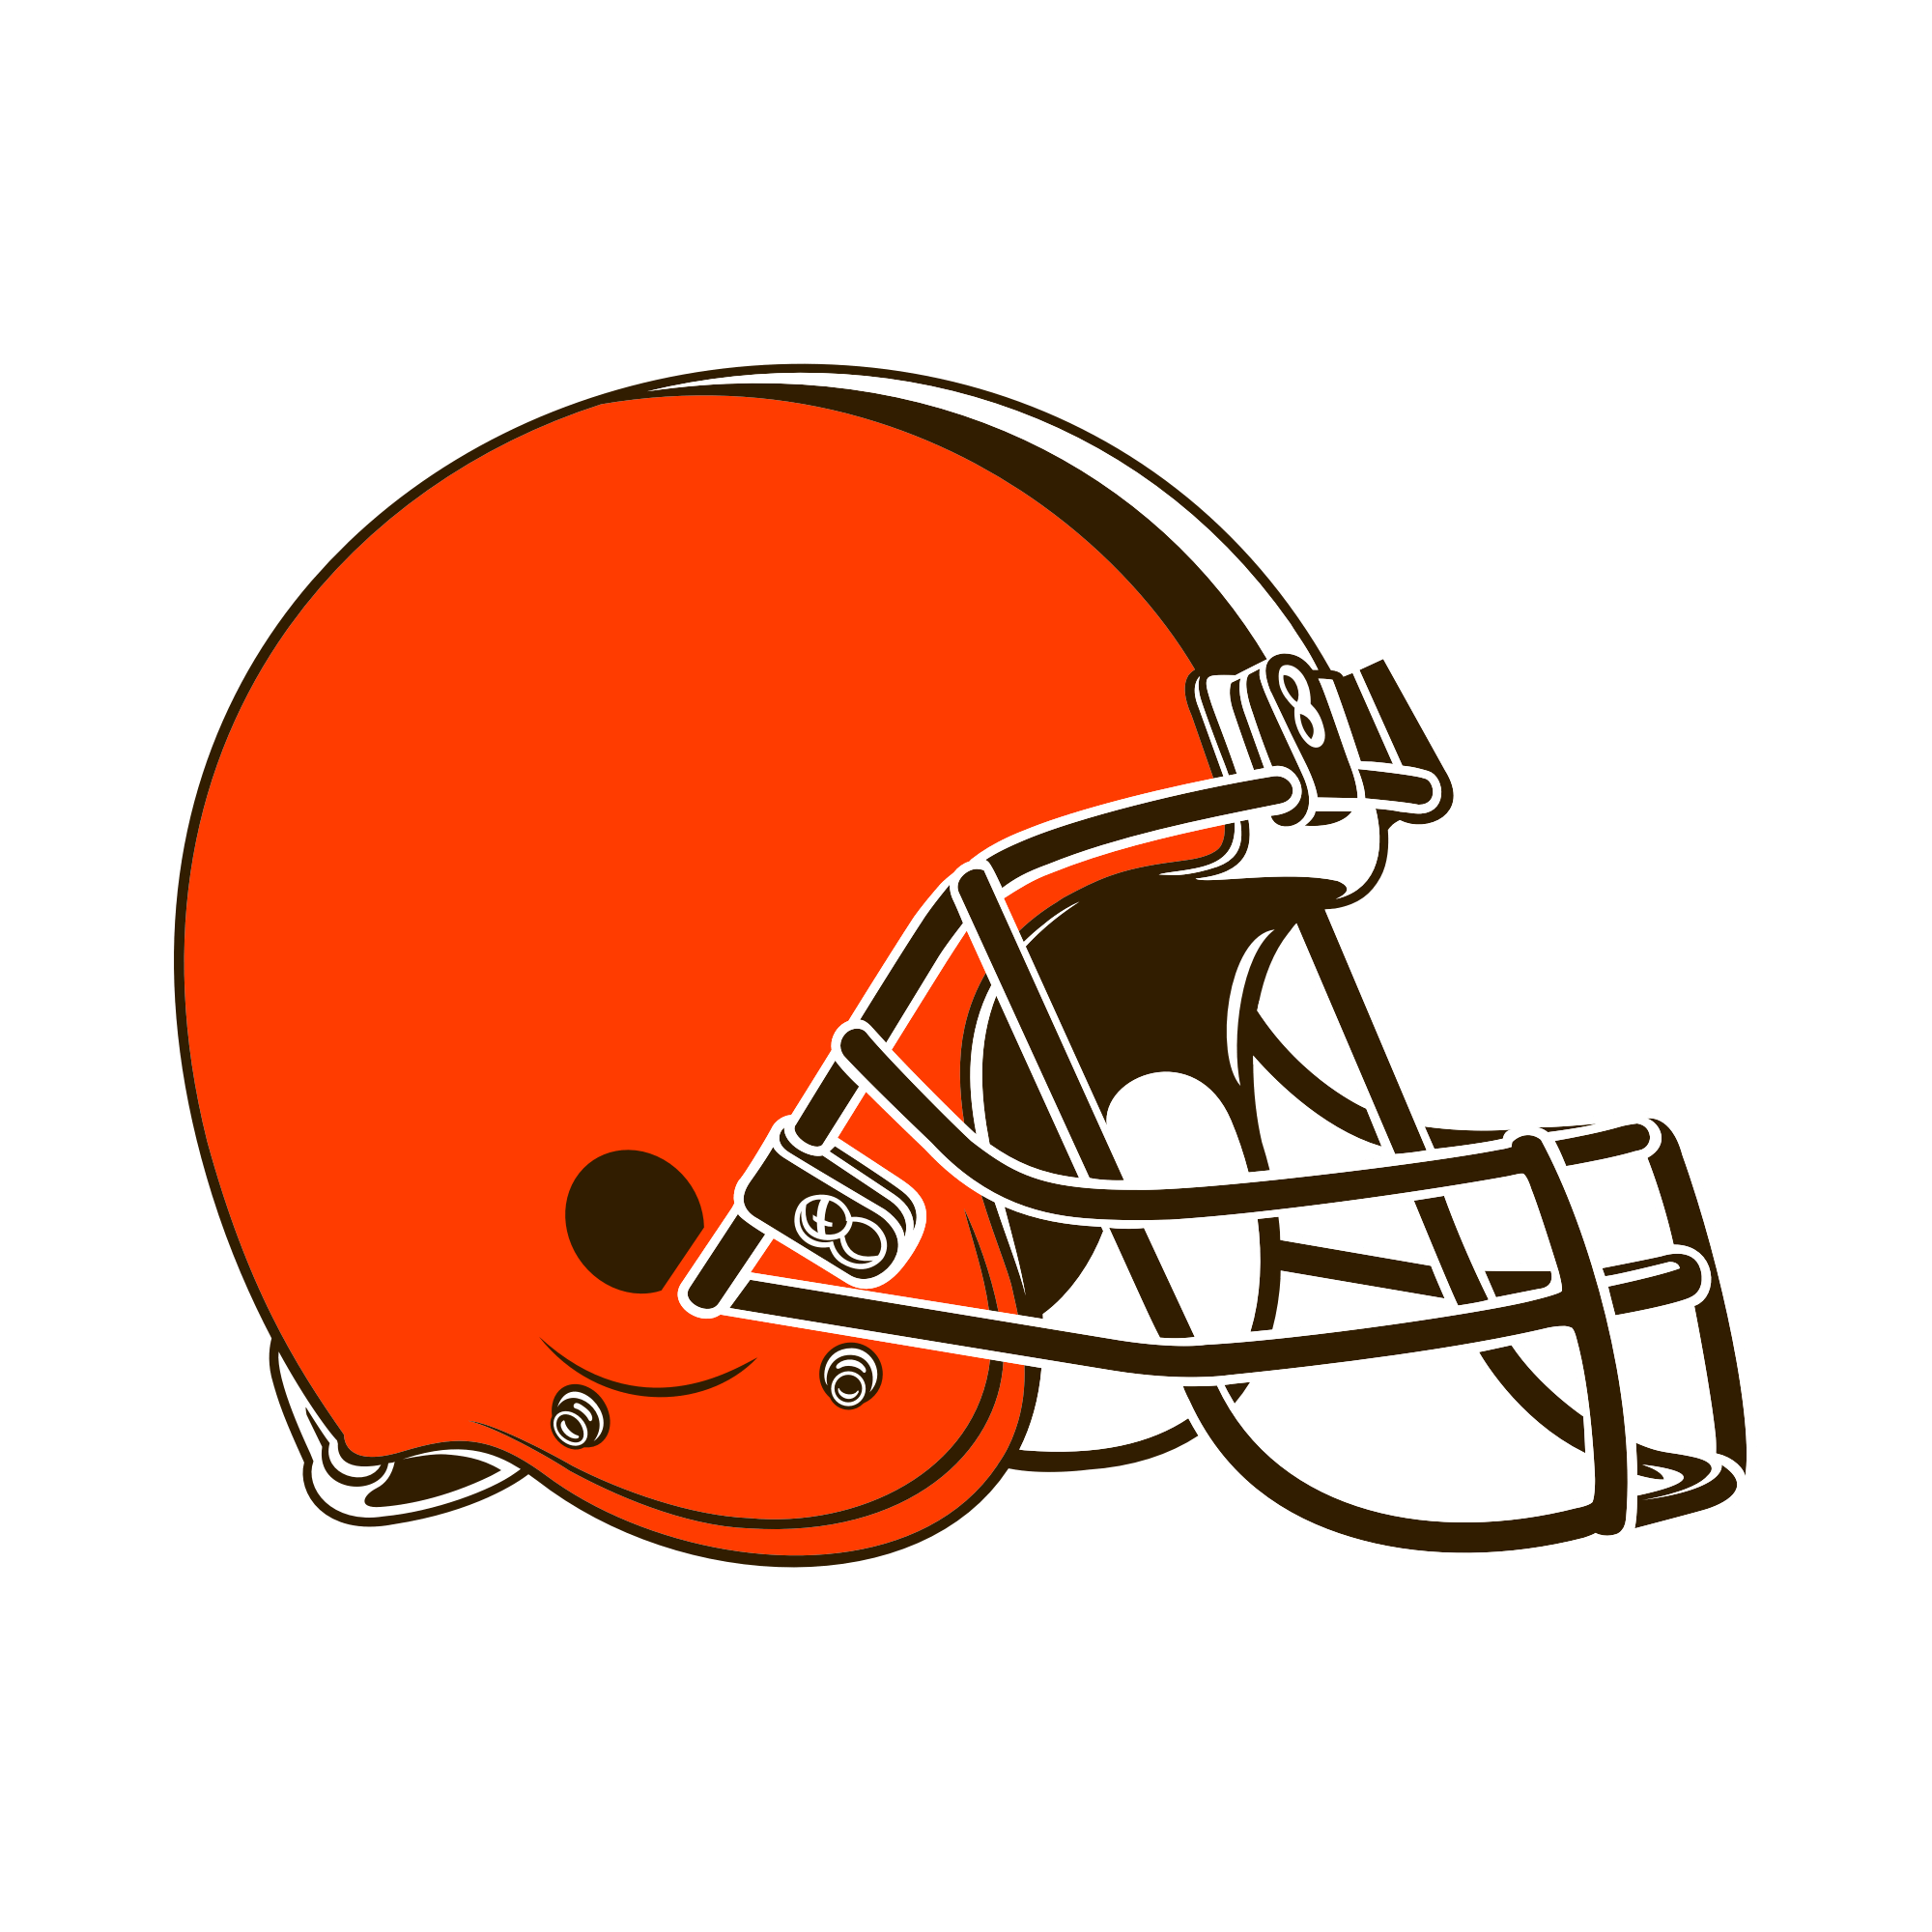 www.clevelandbrowns.com